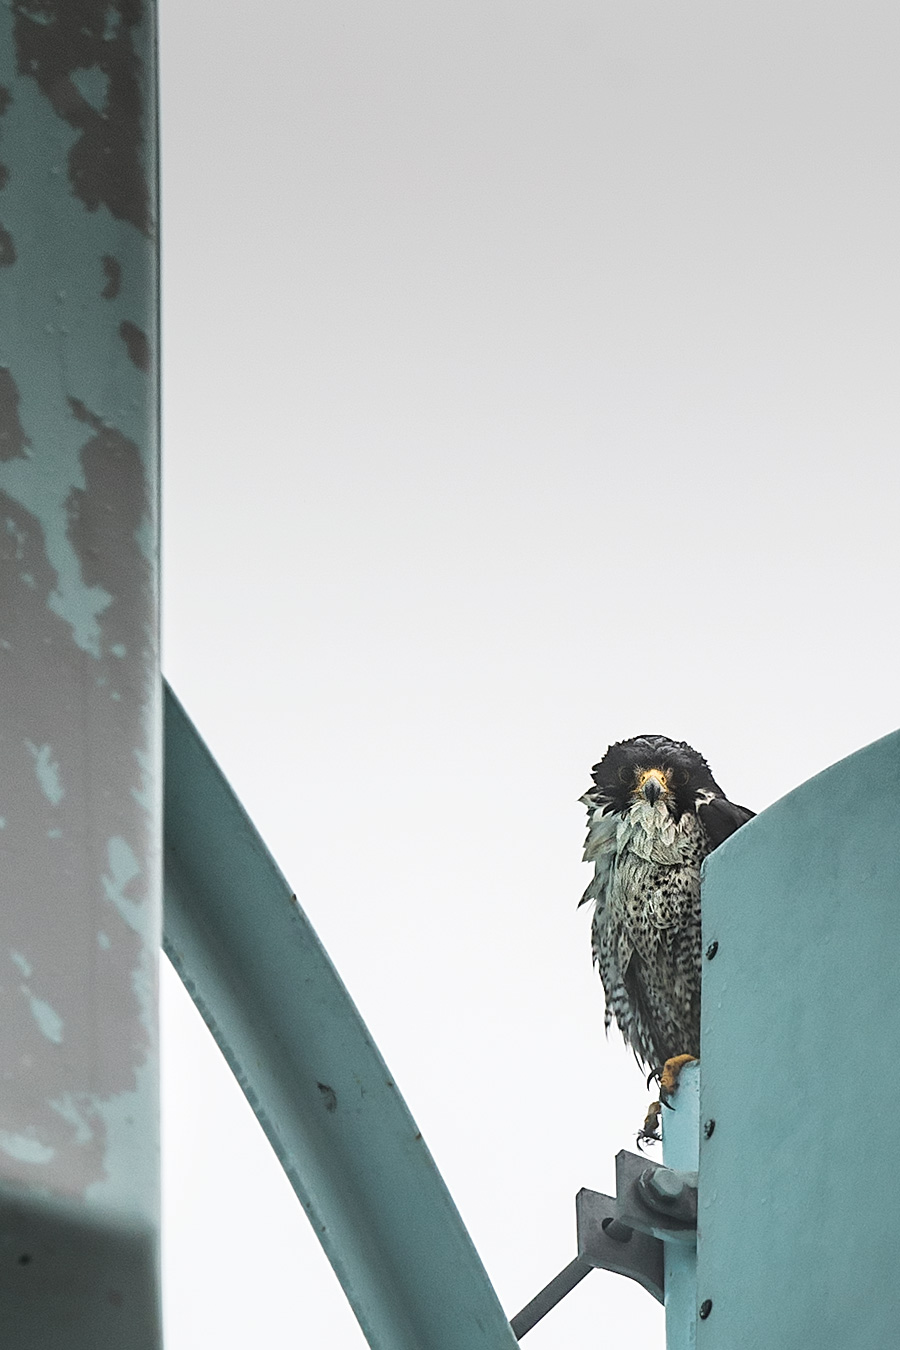 The Surf City Peregrine Falcon spent today like the rest of us: soaked.